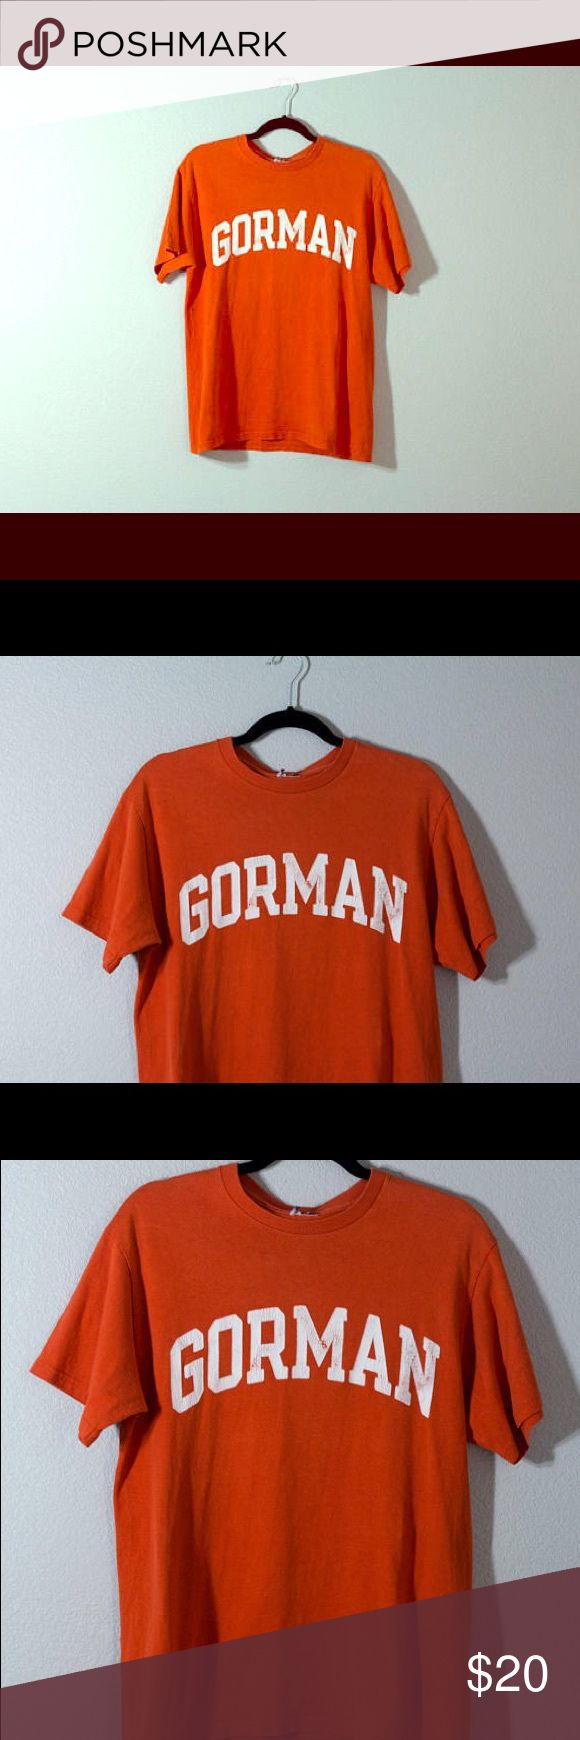 Orange BISHOP GORMAN High School College Tee Shirt Retro Vintage BISHOP GORMAN High School College University Script Text Tee Shirt  Color: Orange  Size: Medium  Condition: Normal wearing/minor cracking on lettering, please see photos. Otherwise, great/good condition Shirts Tees - Short Sleeve